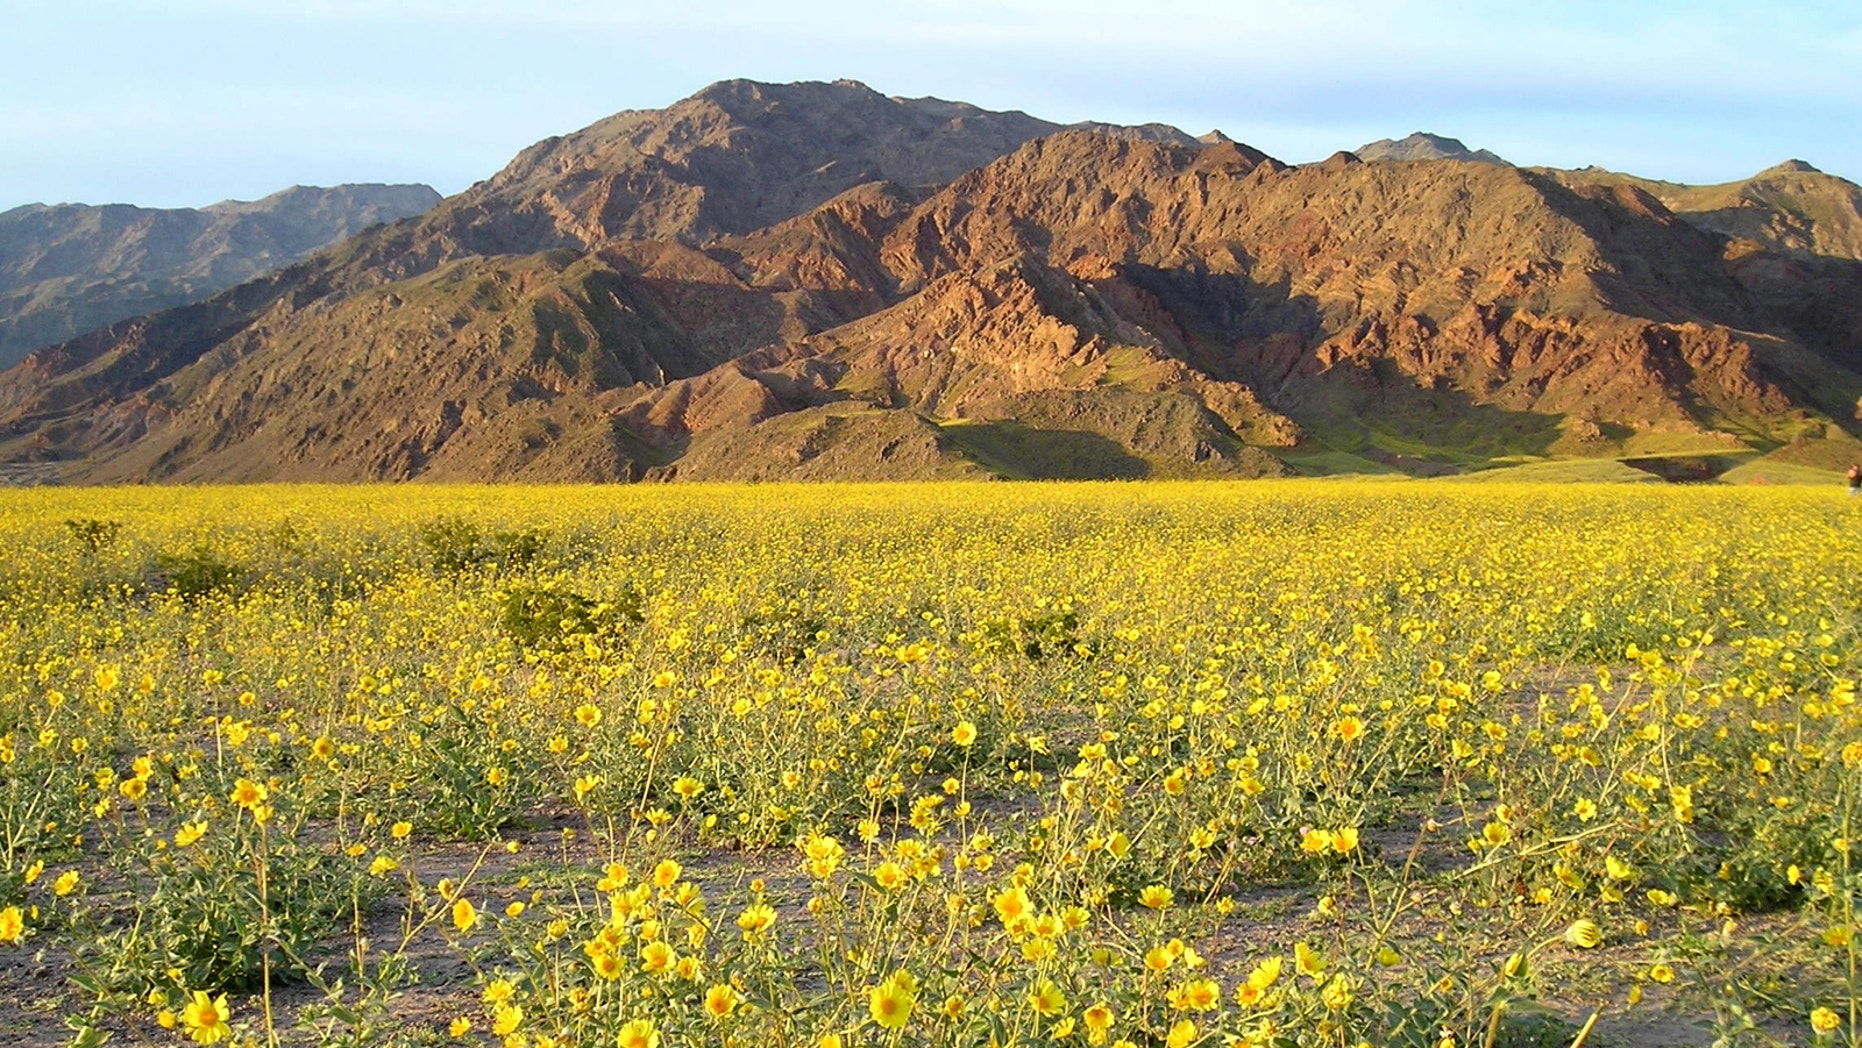 File photo - Abundant winter rains caused a spectacular Death Valley wildflower display in the spring of 2005 (National Park Service).